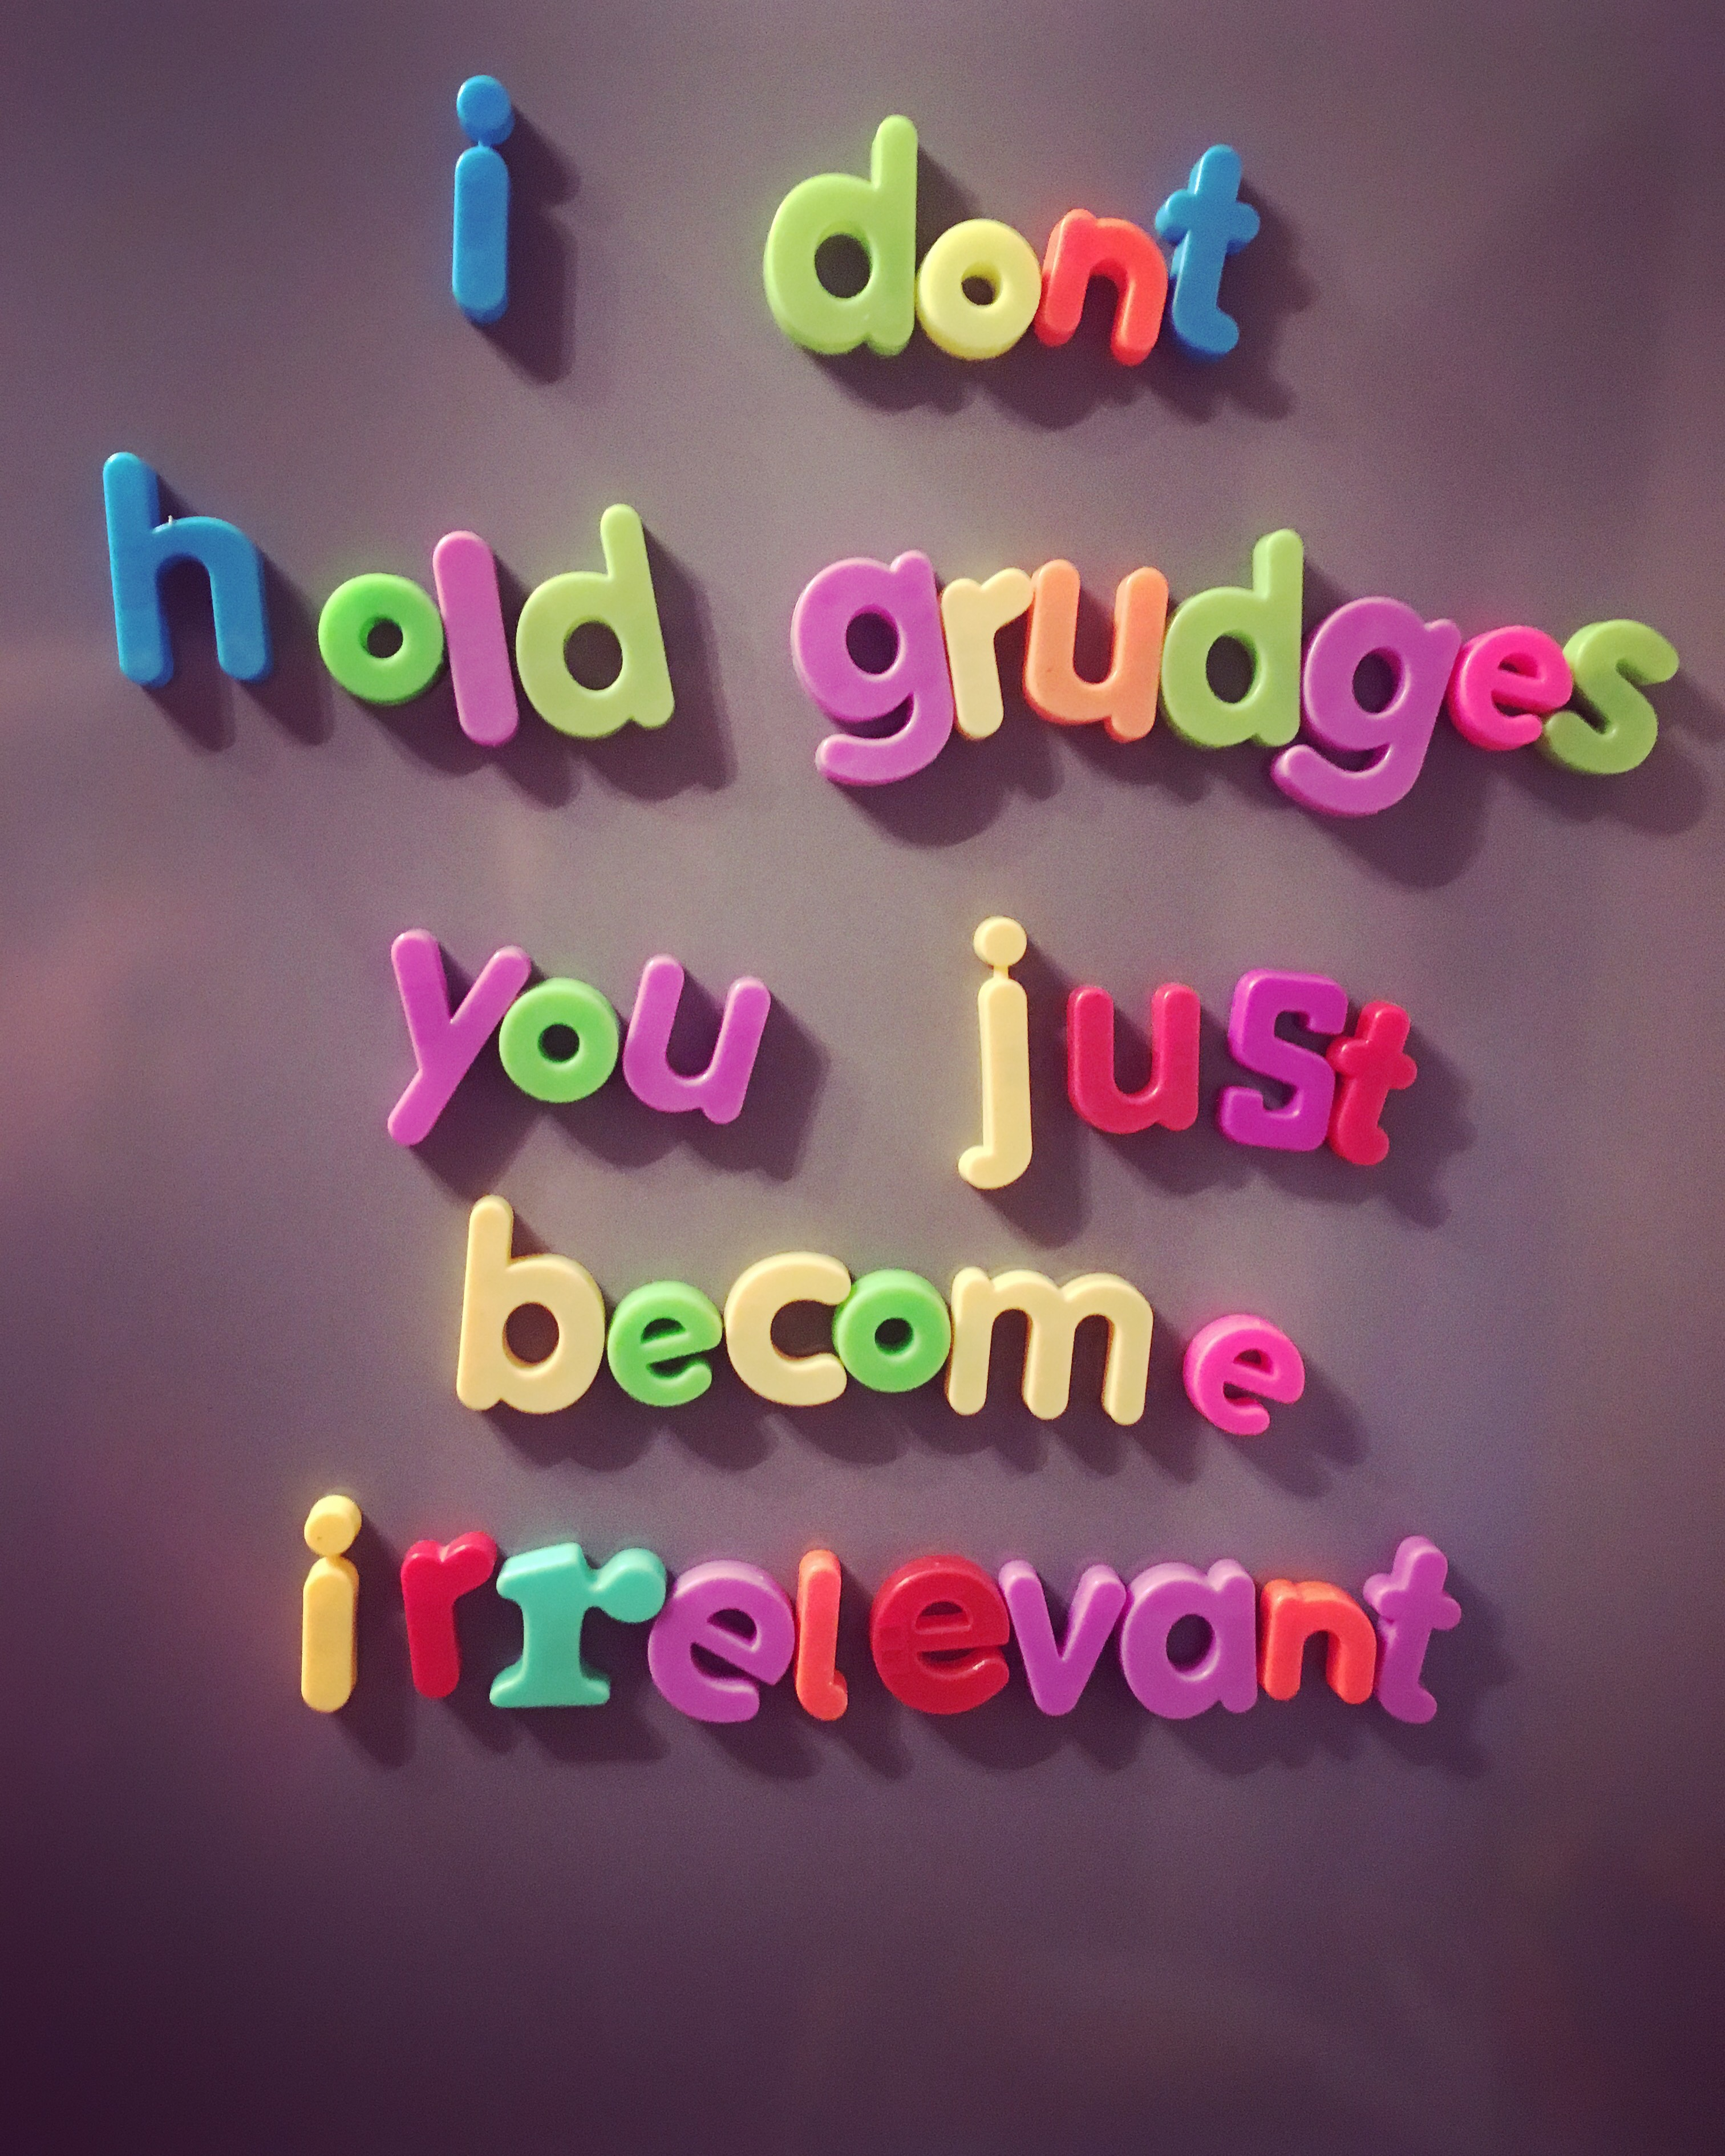 I Dont Hold Grudges You Just Become Irrelevant Whatmyfridgesays